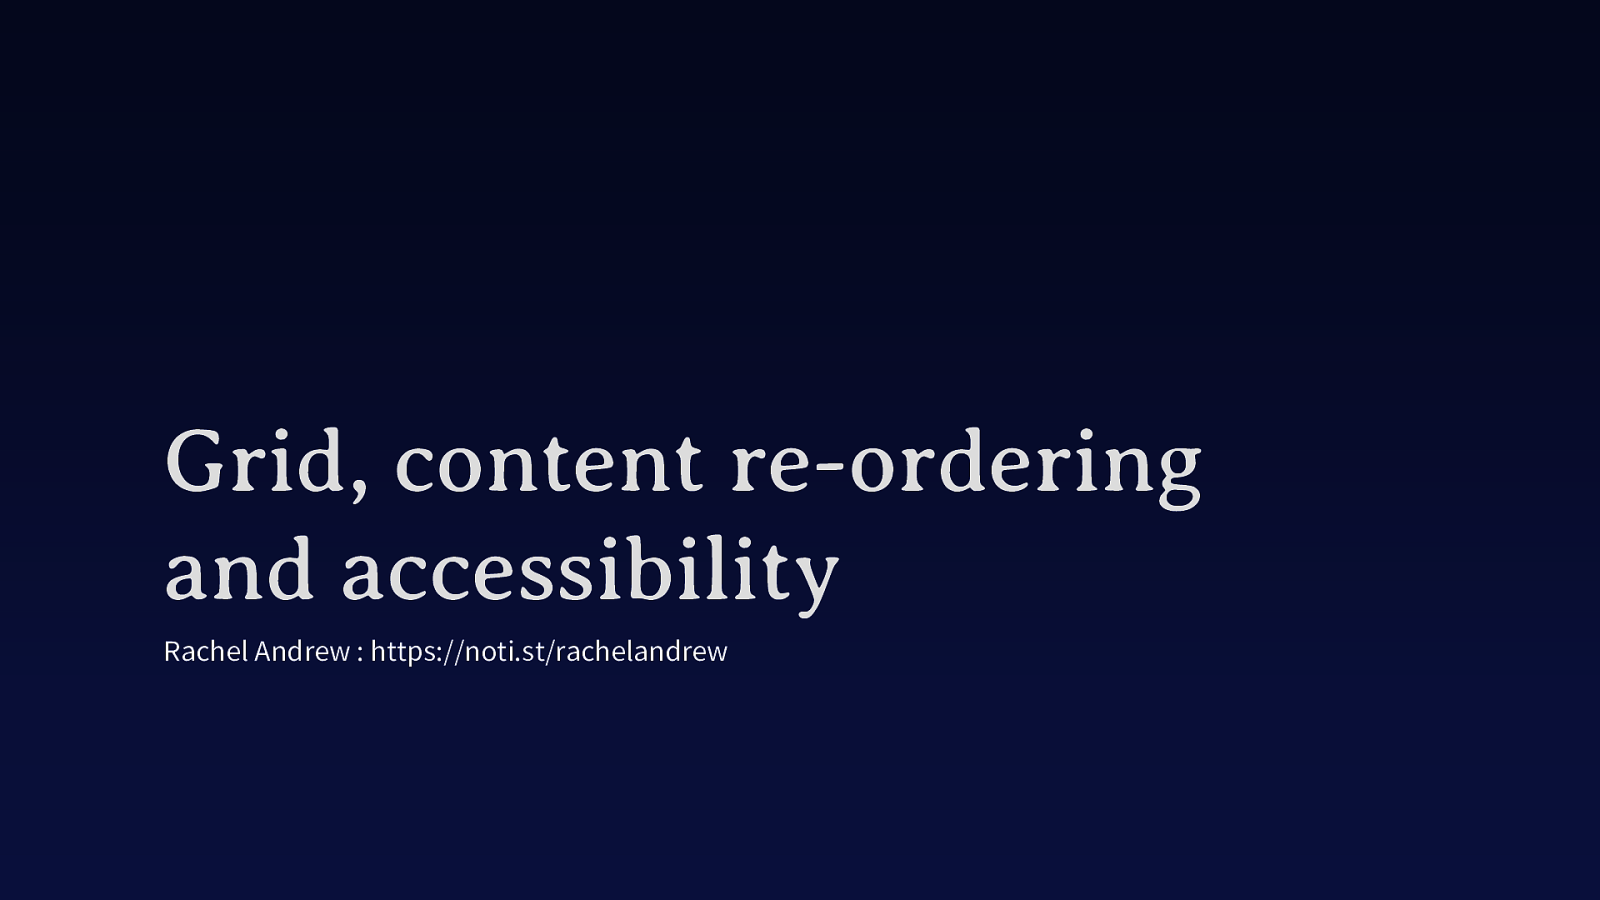 Grid, content re-ordering and accessibility